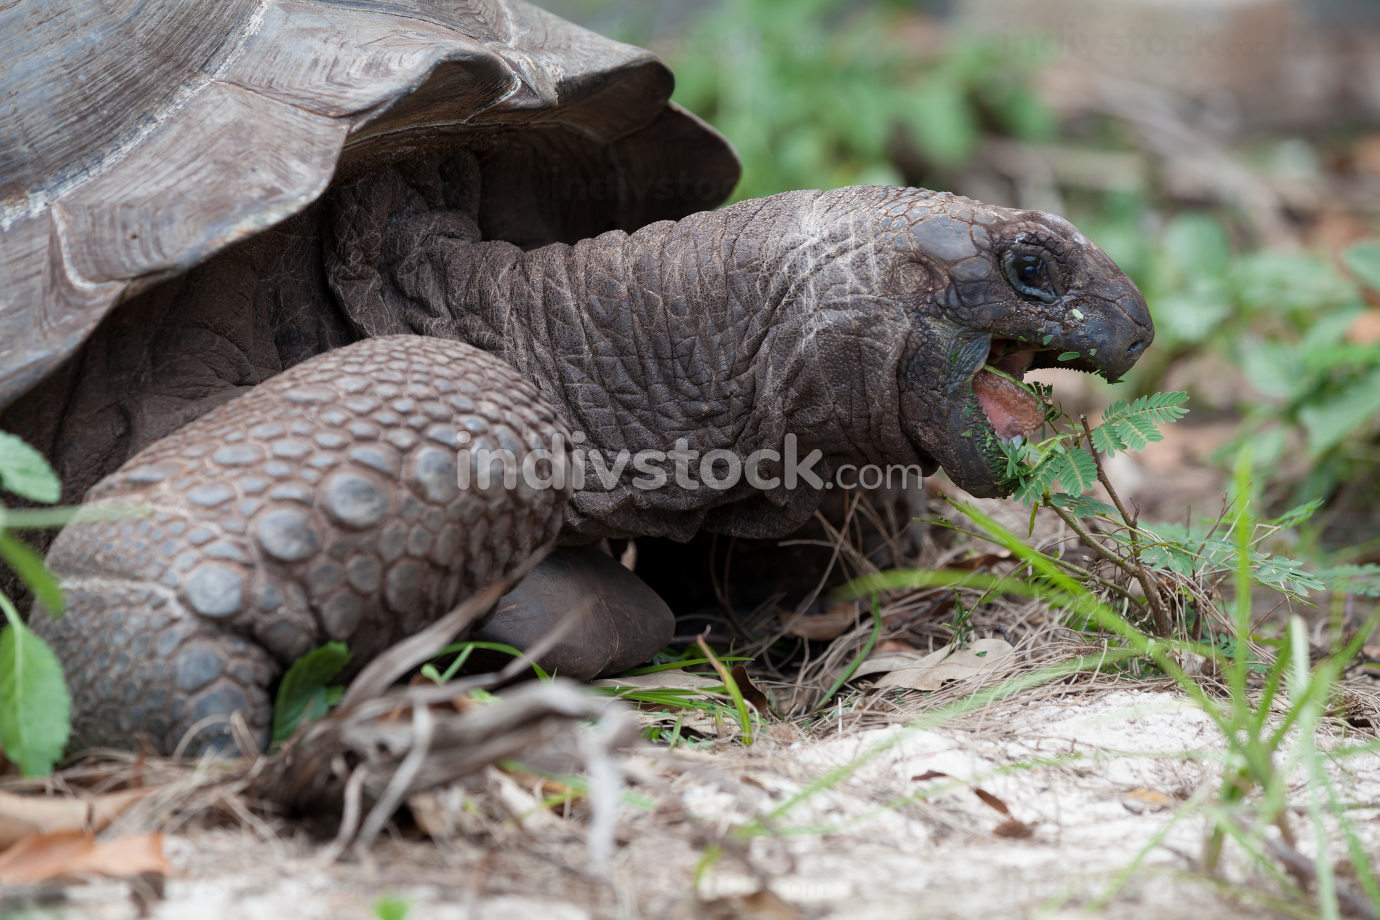 A big turtle between the gras